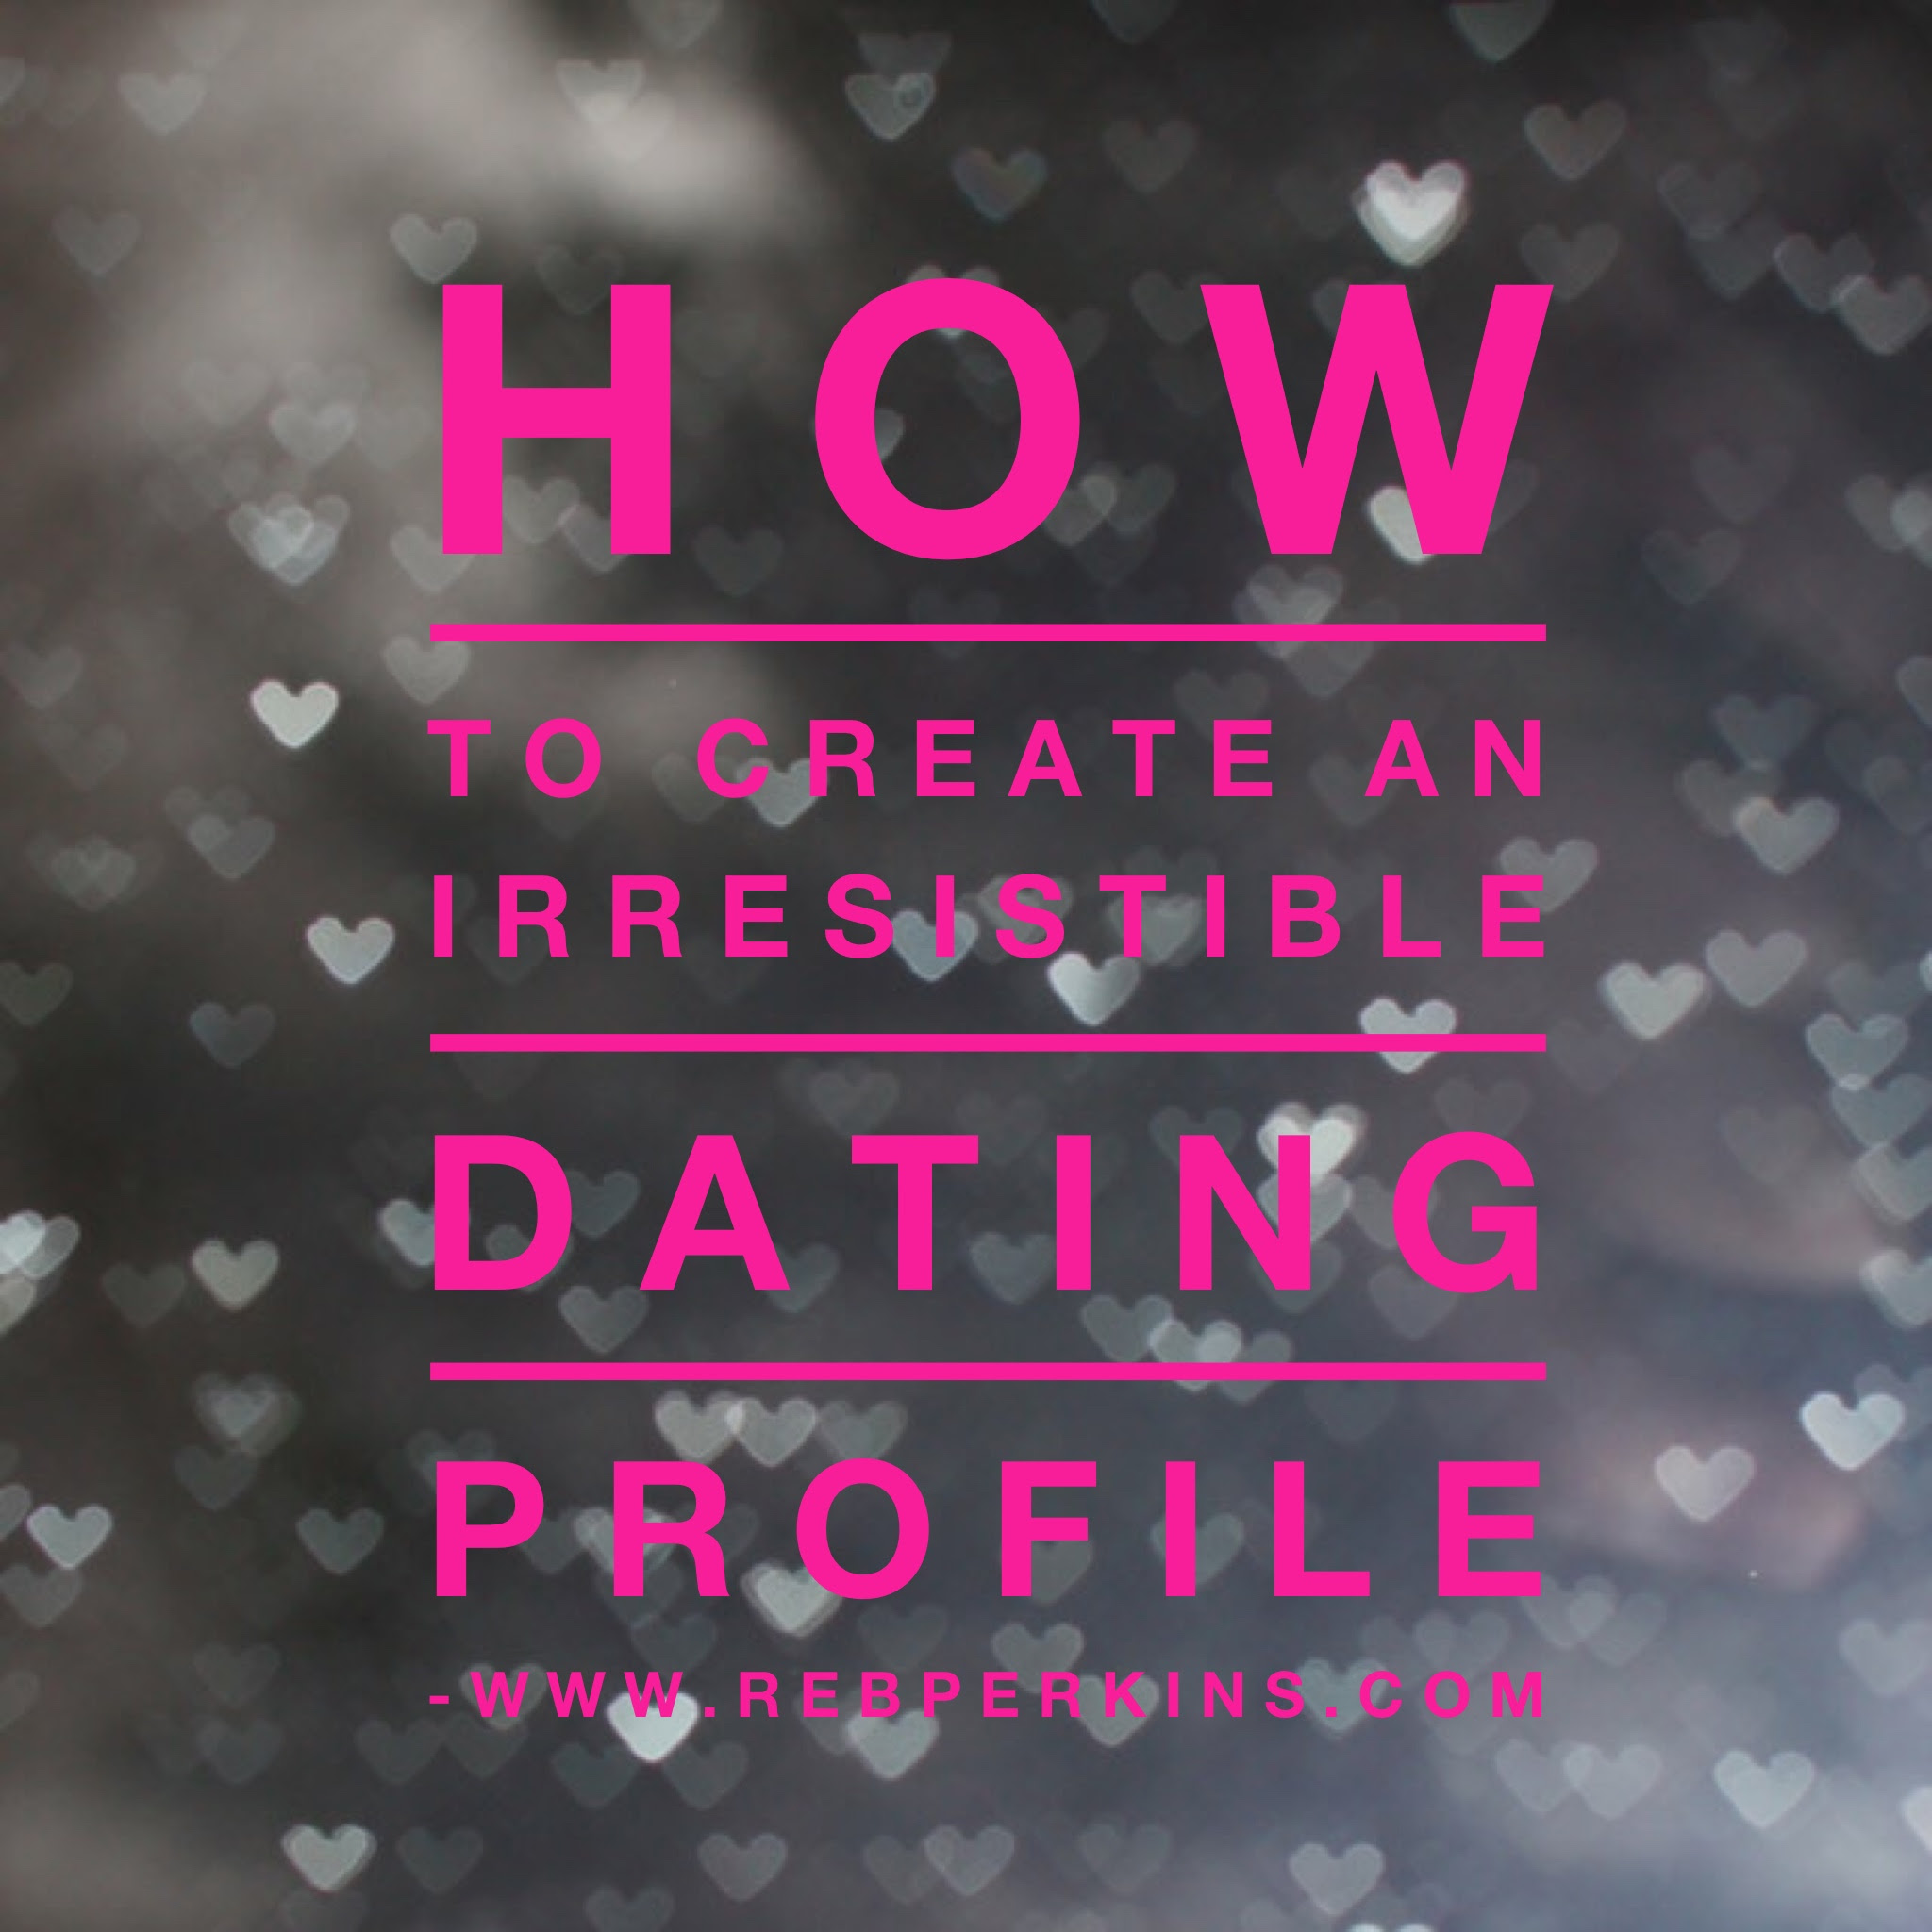 online dating profile huffington post